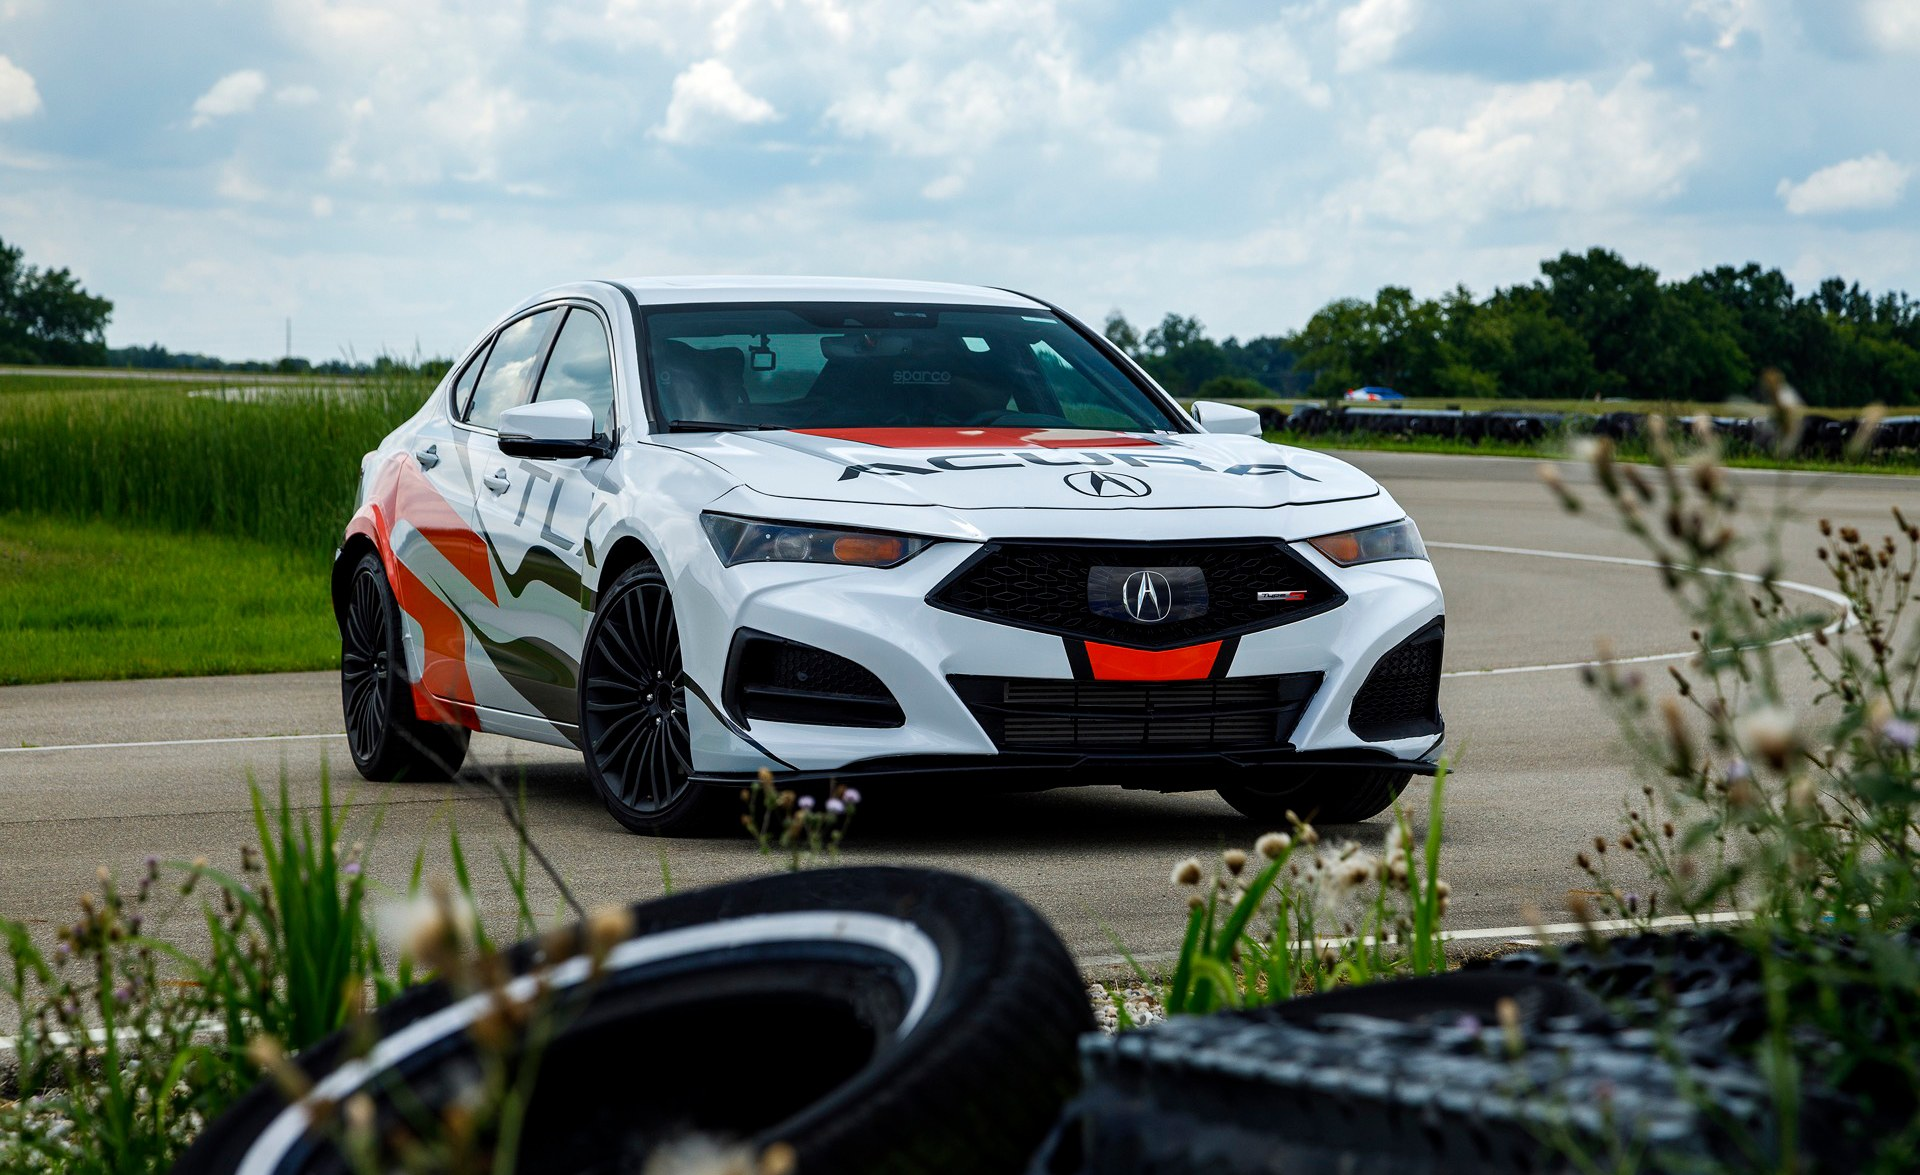 2021 Acura TLX Type S Pikes Peak pace car